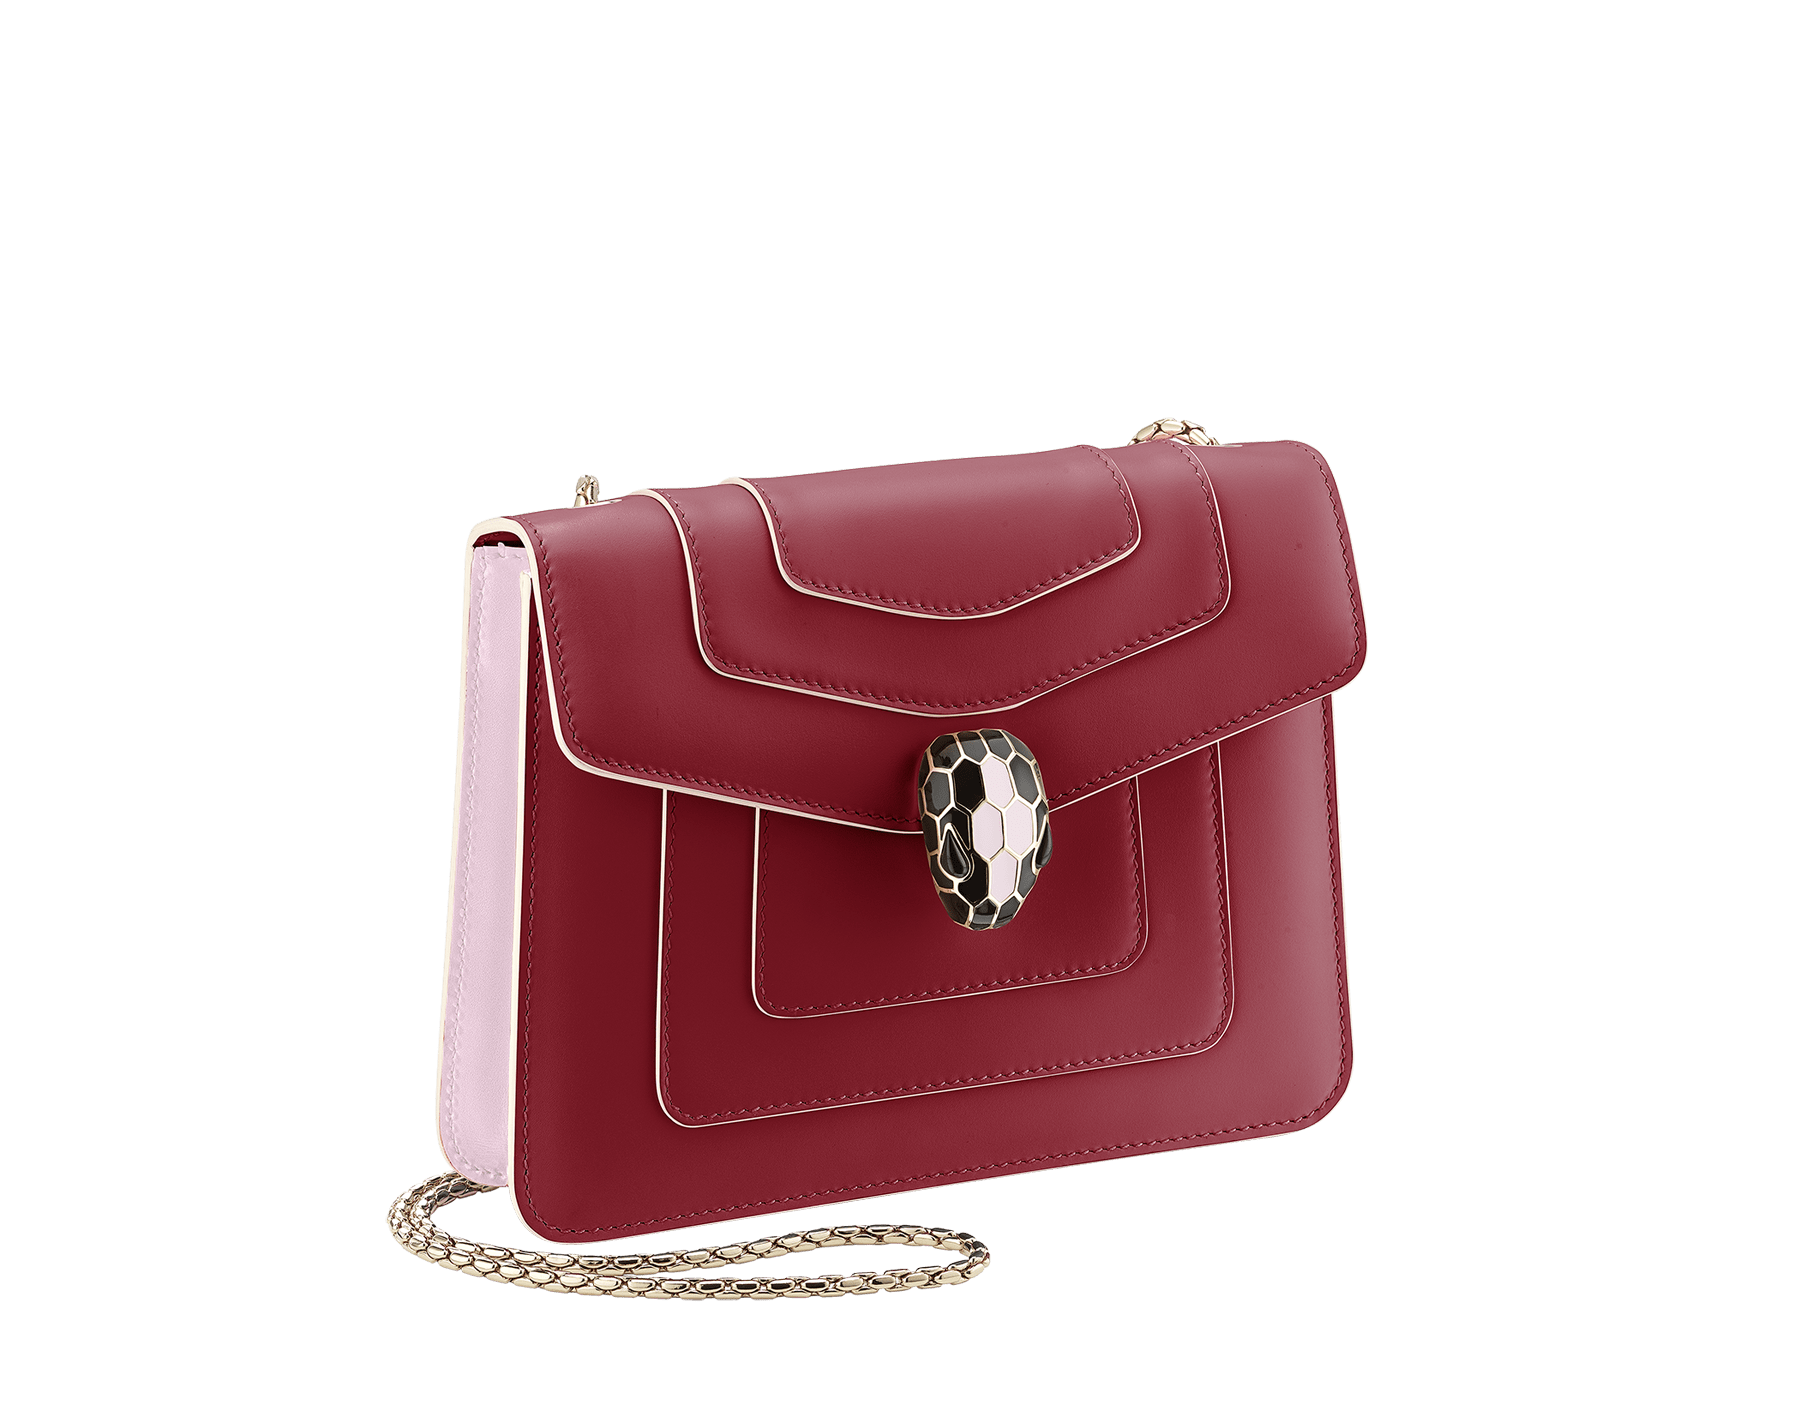 Serpenti Forever crossbody bag in Roman garnet calf leather, with rosa di francia calf leather sides. Iconic snakehead closure in light gold plated brass embellished with black and white enamel and green malachite eyes. 289035 image 5